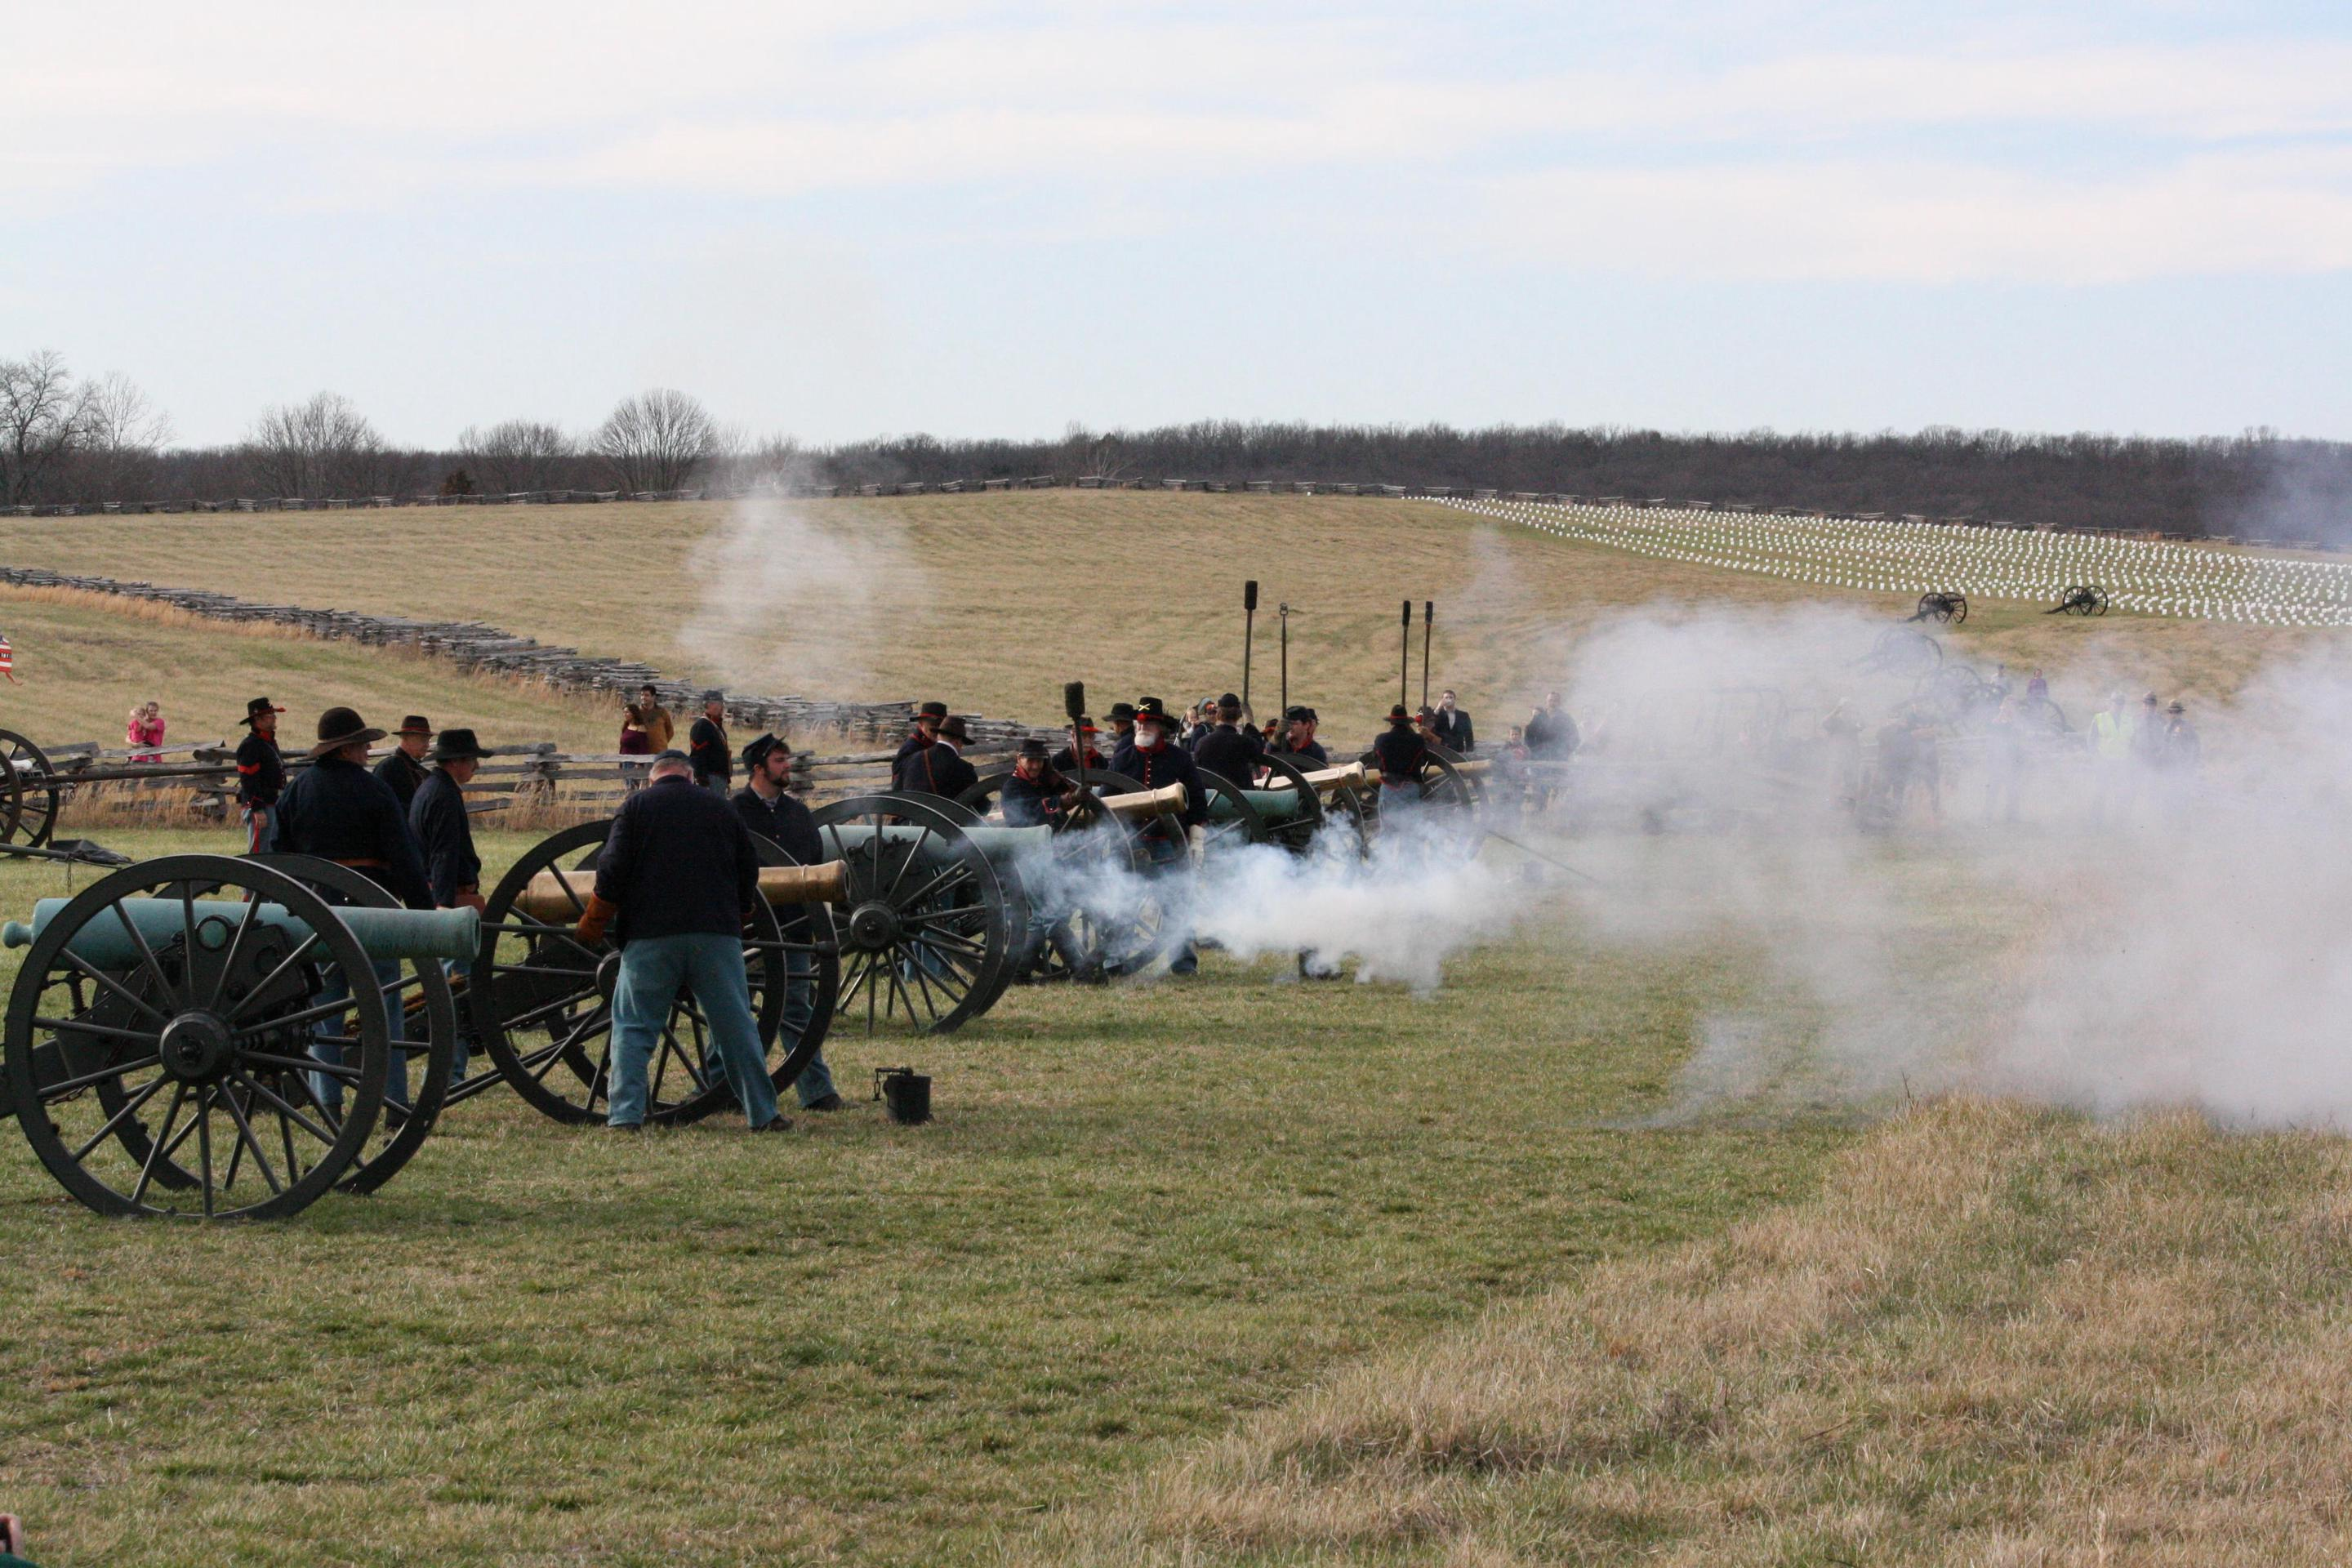 Union CannonsPhoto of Union artilleryman reenactors standing in Cox's field firing cannon's on the 150th Anniversary of the Battle of Pea Ridge.